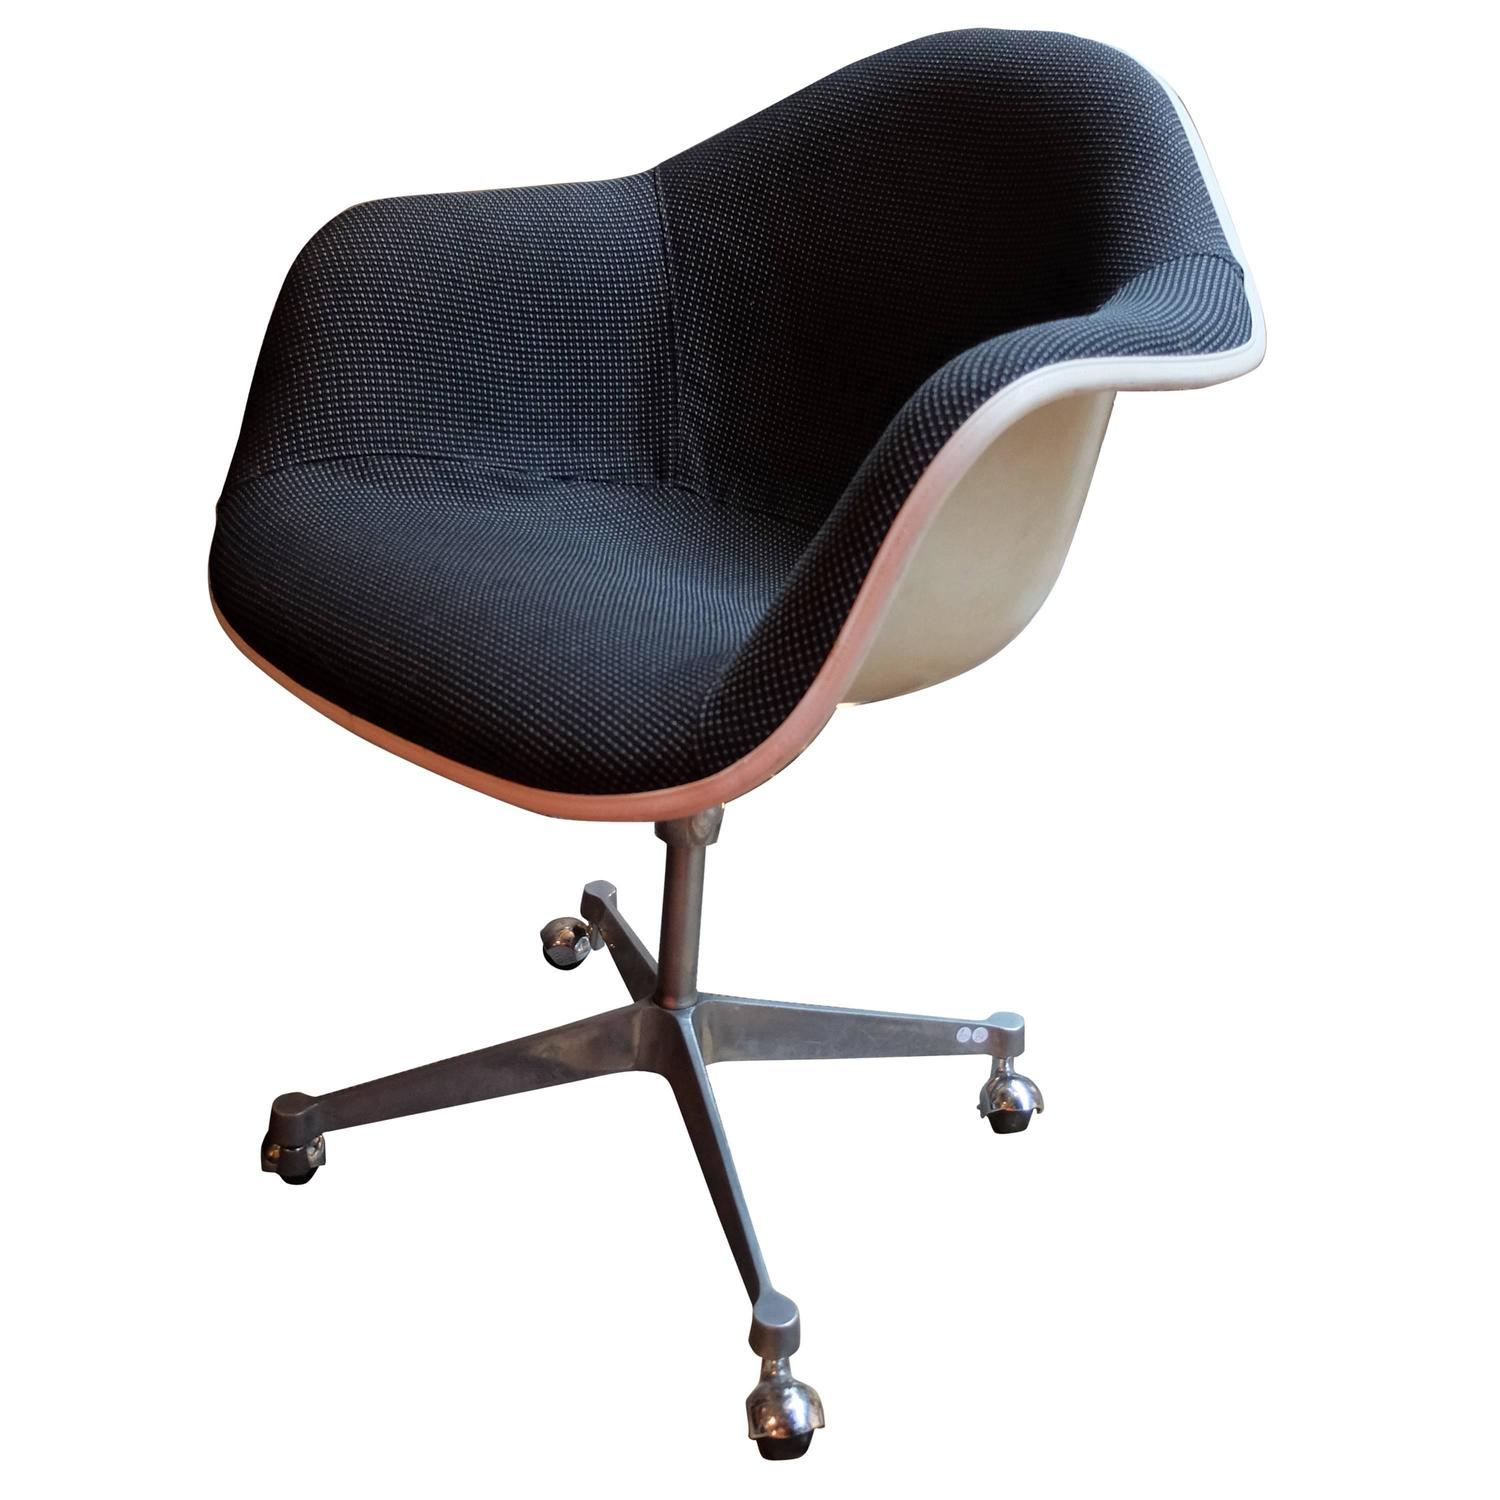 Eames designed chair edited and signed by mobilier for Eames mobilier